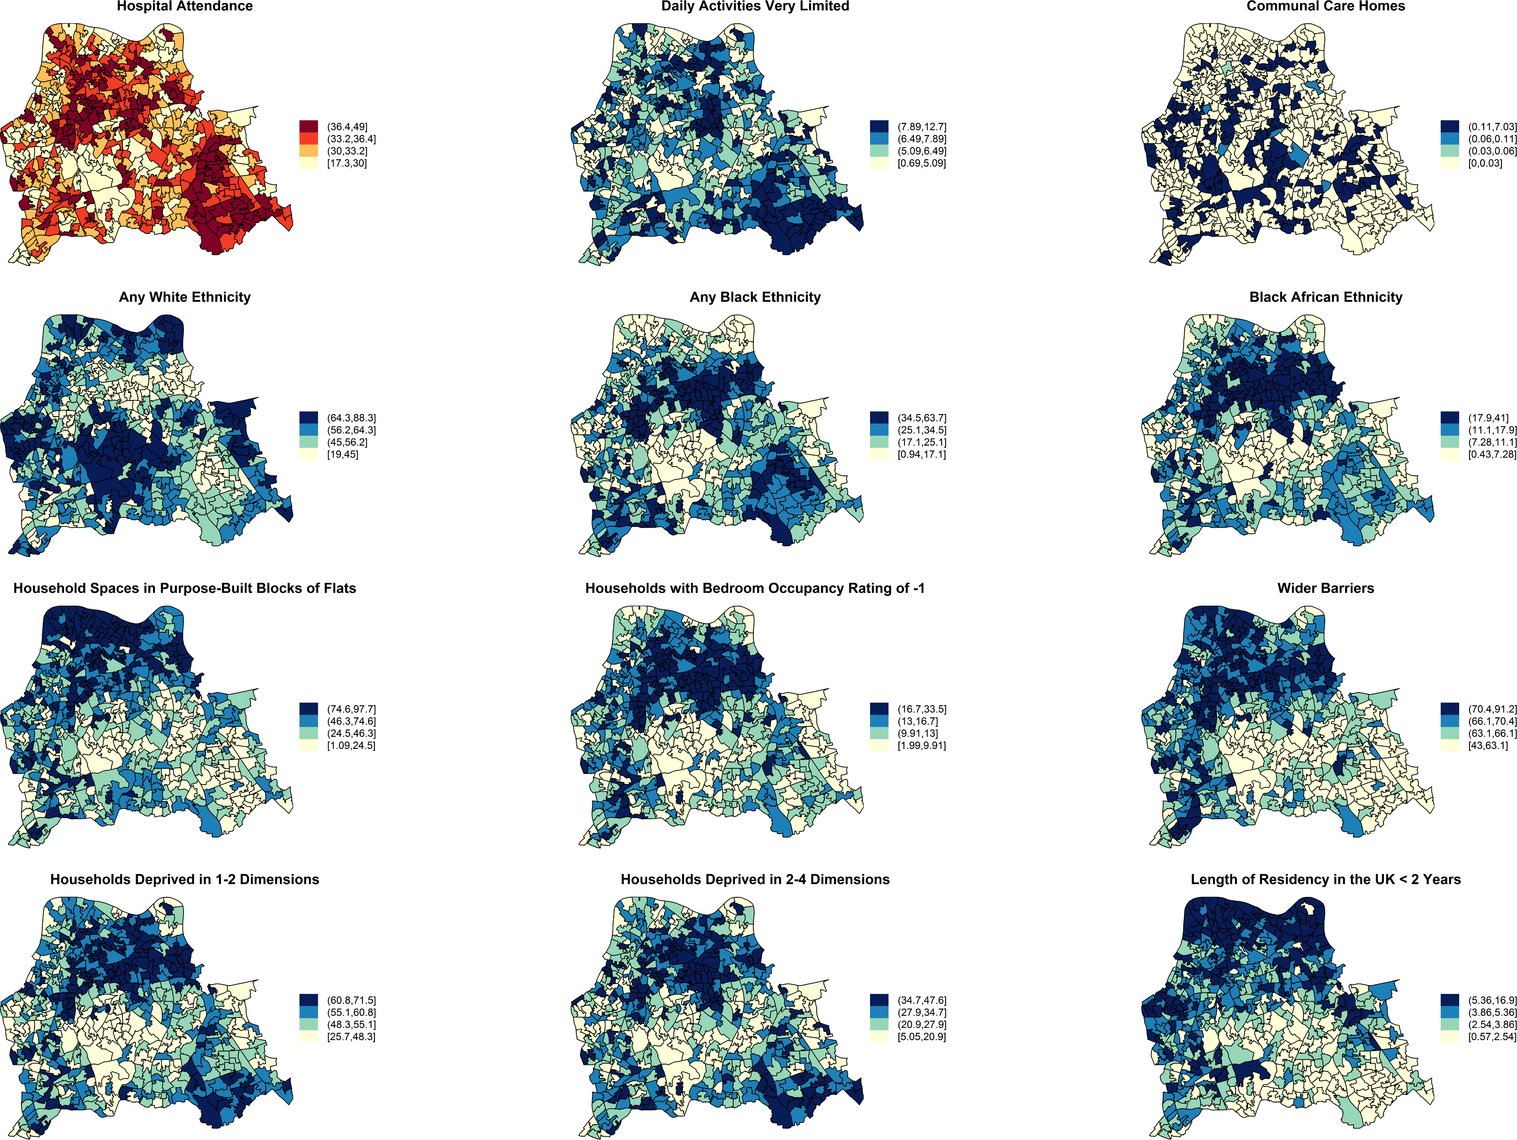 Maps for significant predictors of MRSA infection or colonisation in catchment areas of the London hospital cohort.